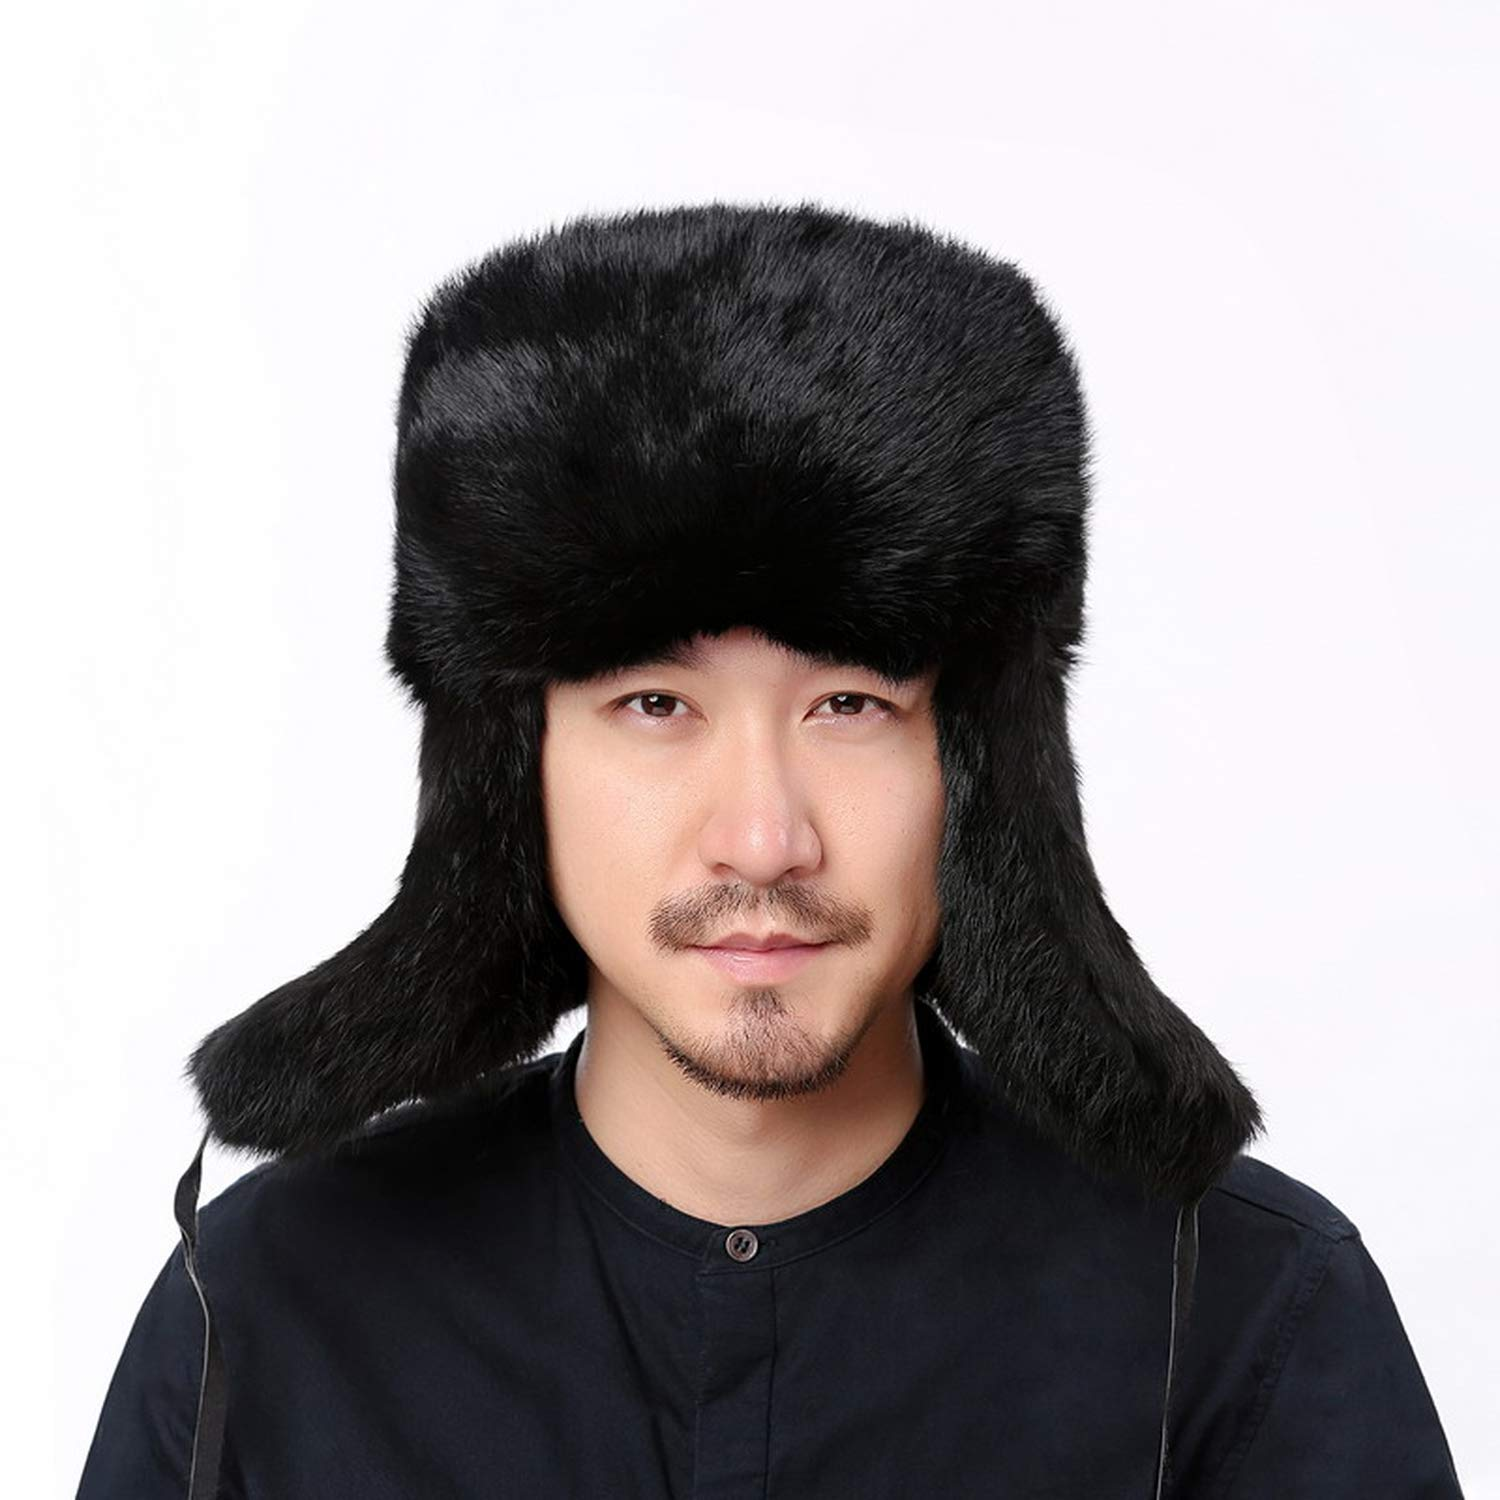 c4ee37640 DOSOMI Winter Bomber Hat Male Real Natural Rabbit Fur Hat Russian ...